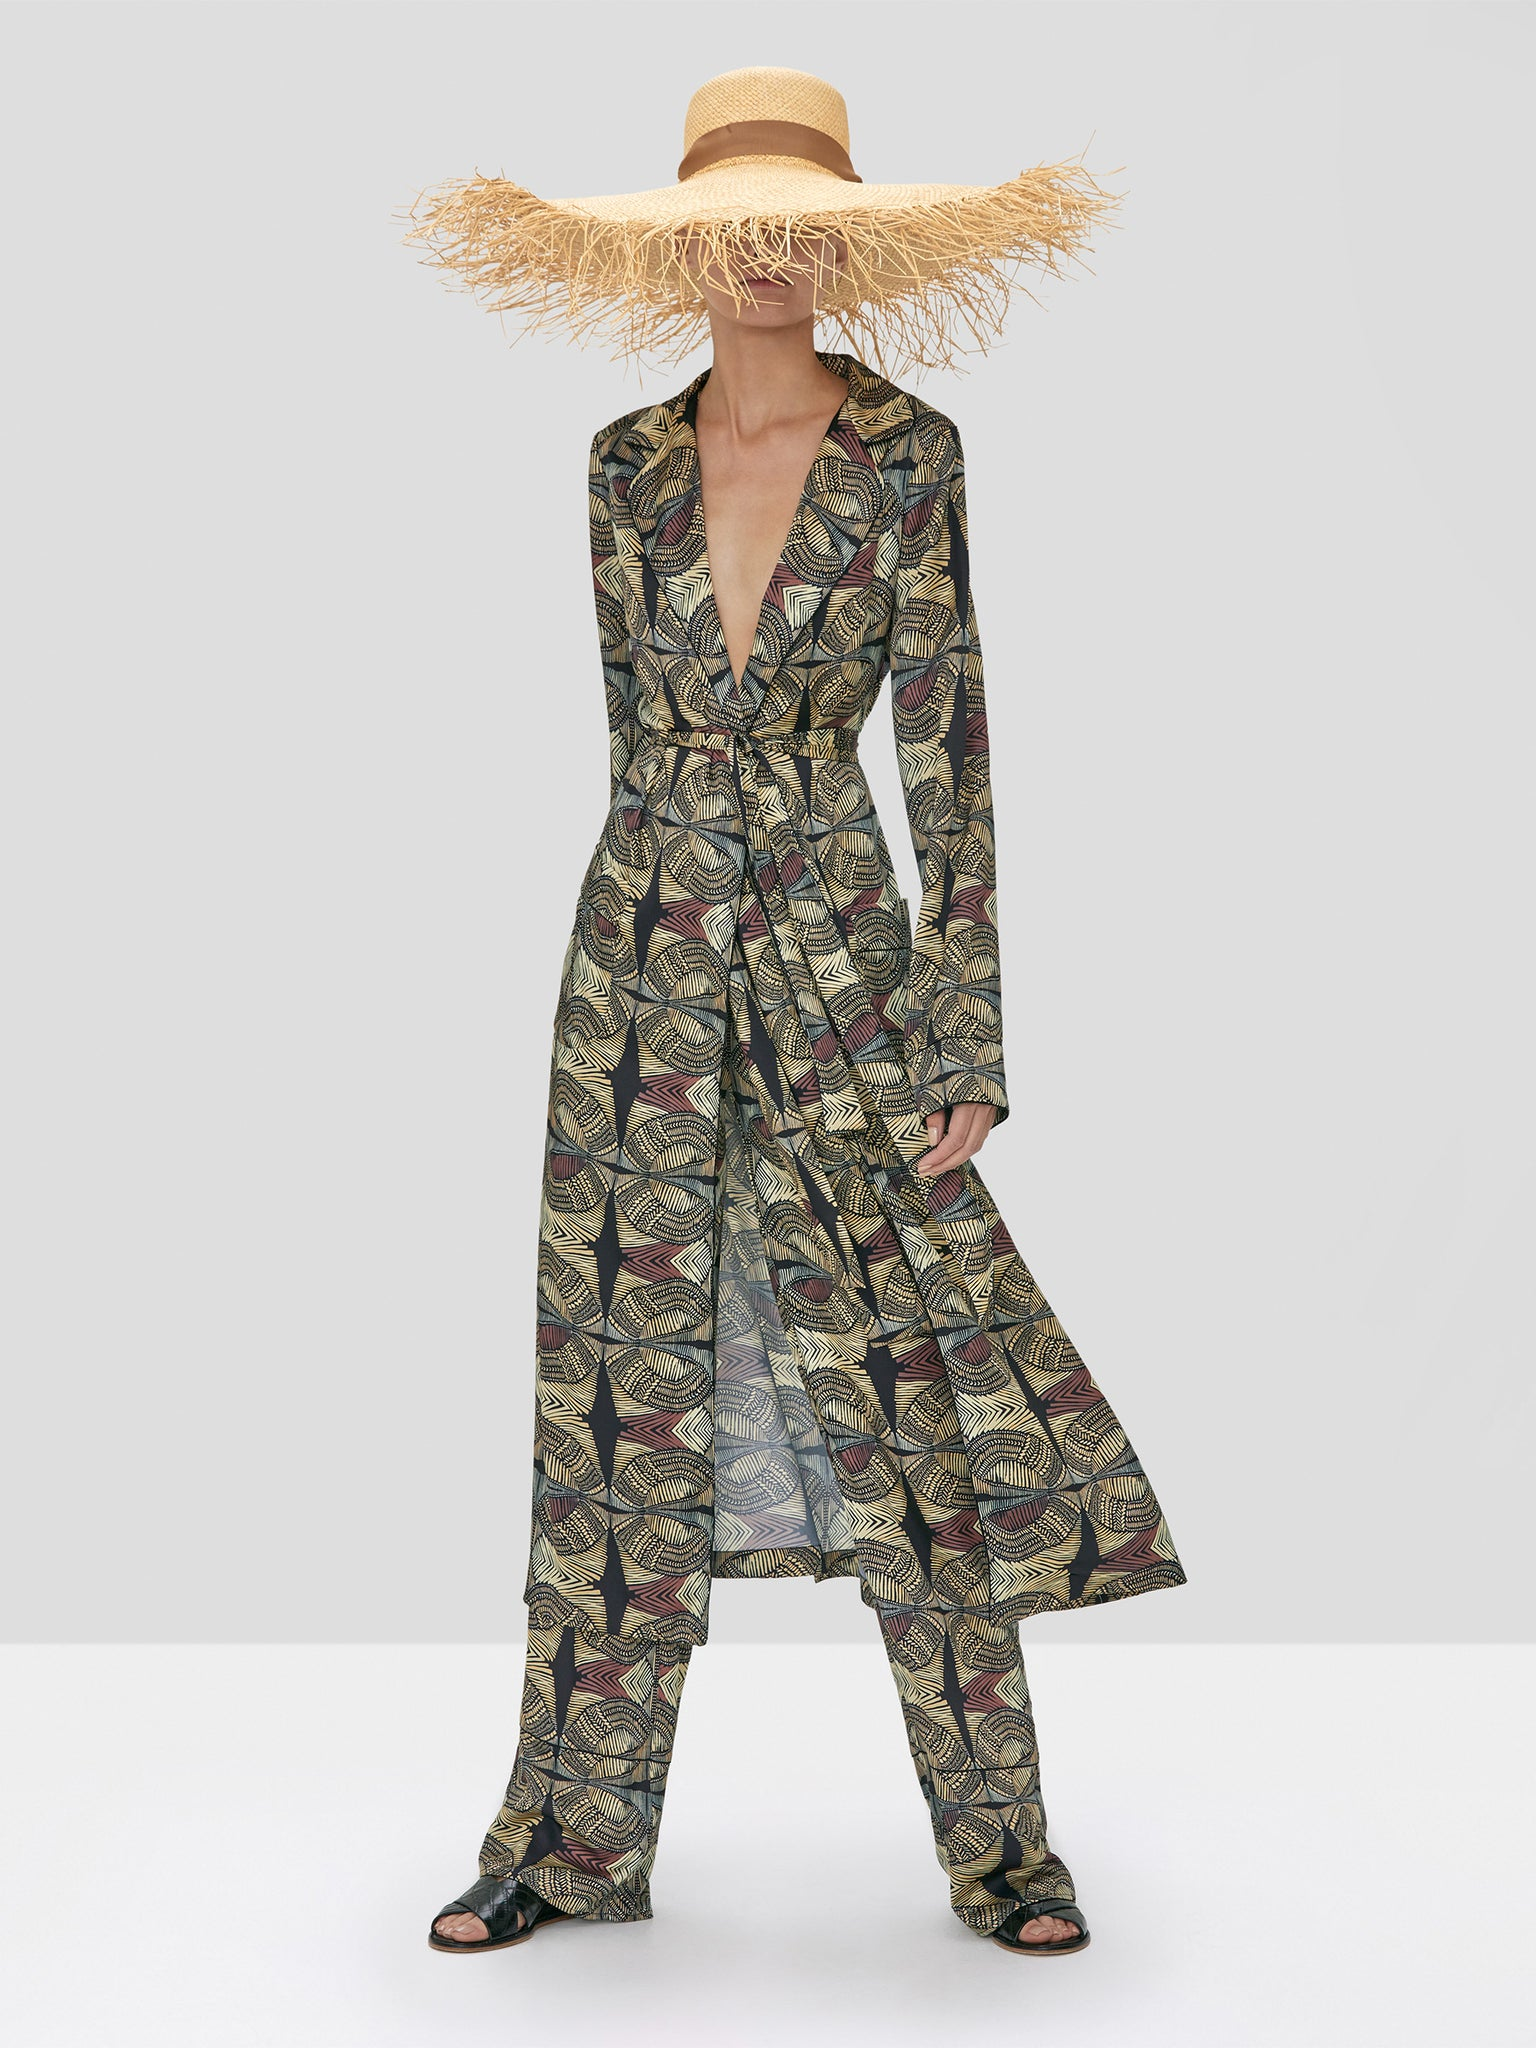 Alexis Arrati Coat and Amptin Pant in Safari from Spring Summer 2020